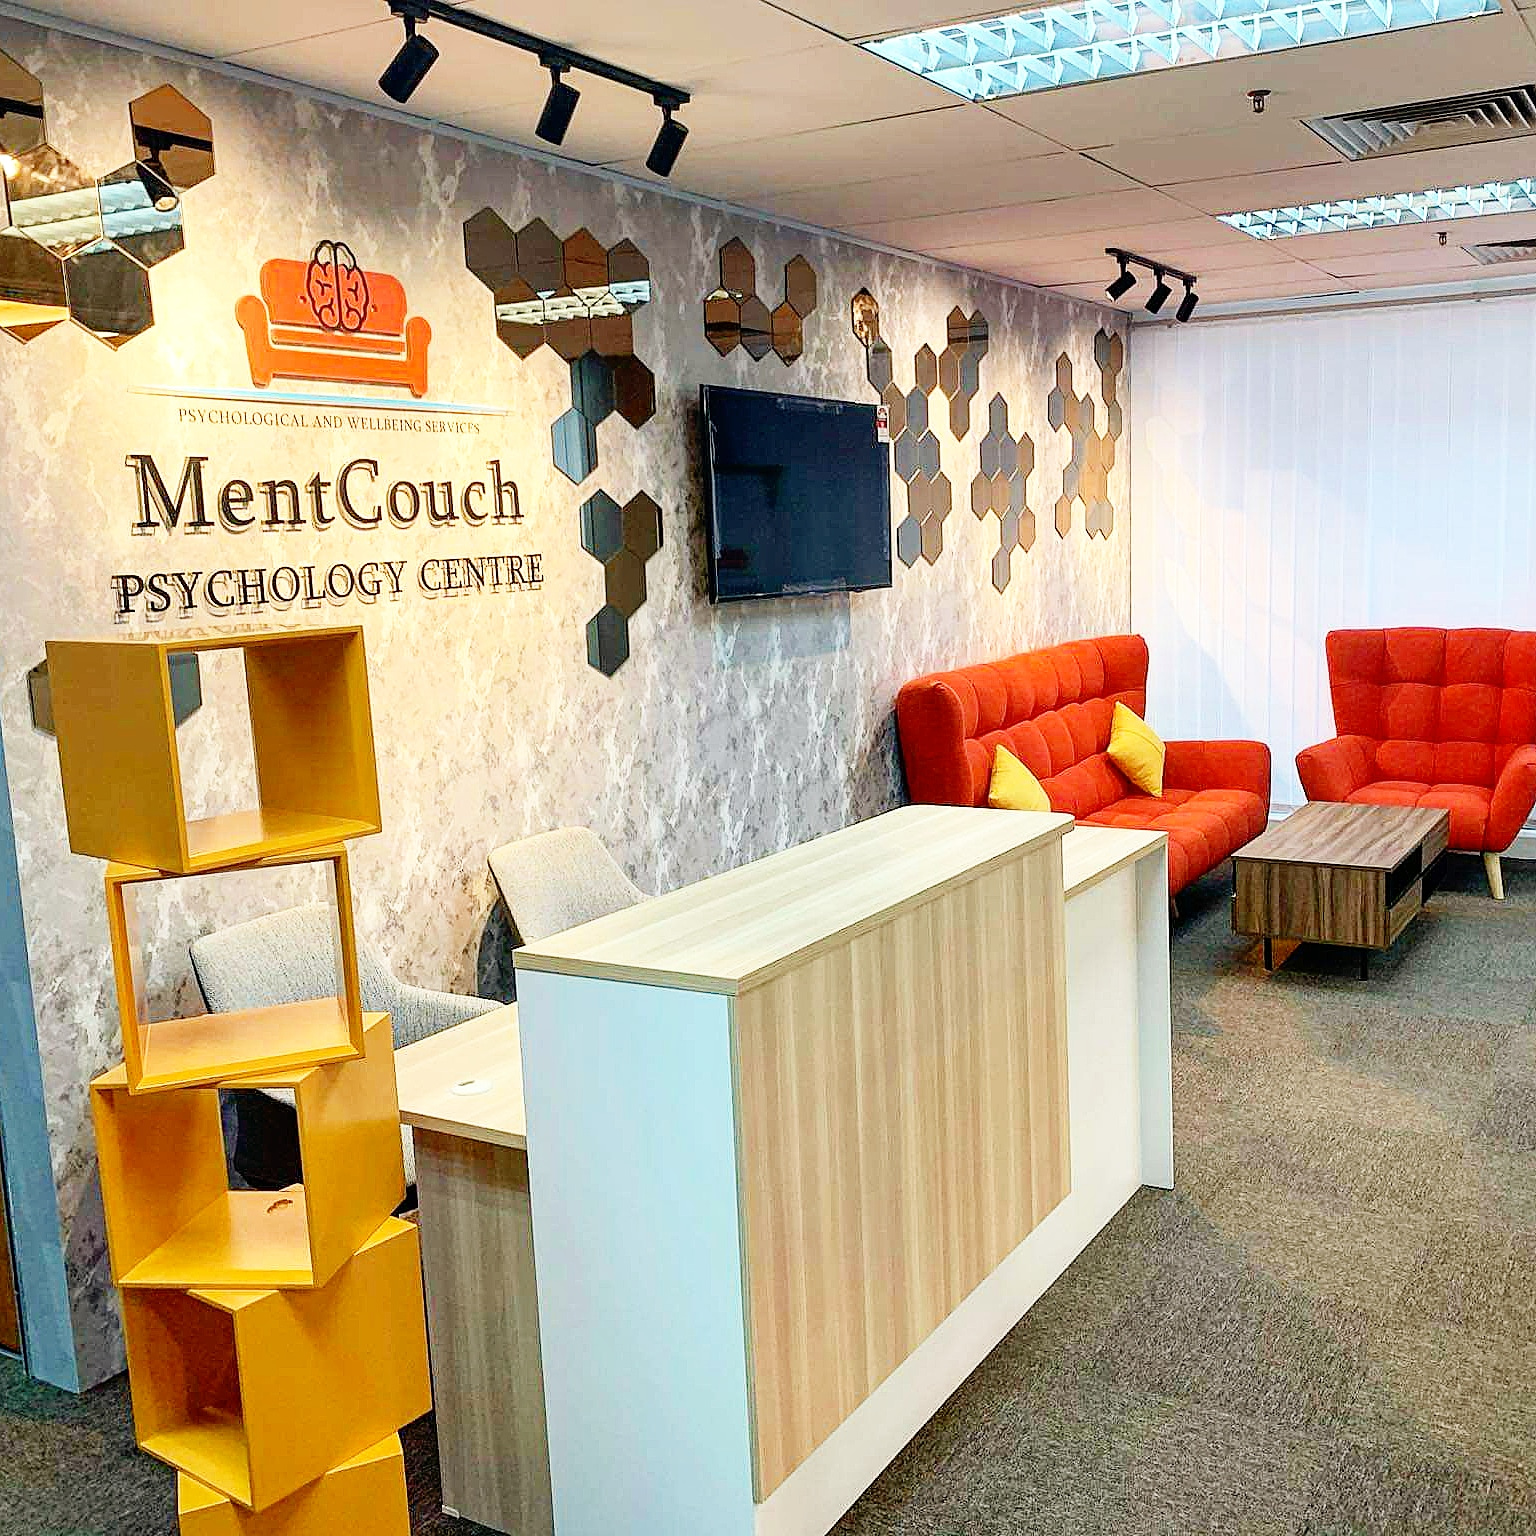 mental health services and hotlines malaysia - mentcouch